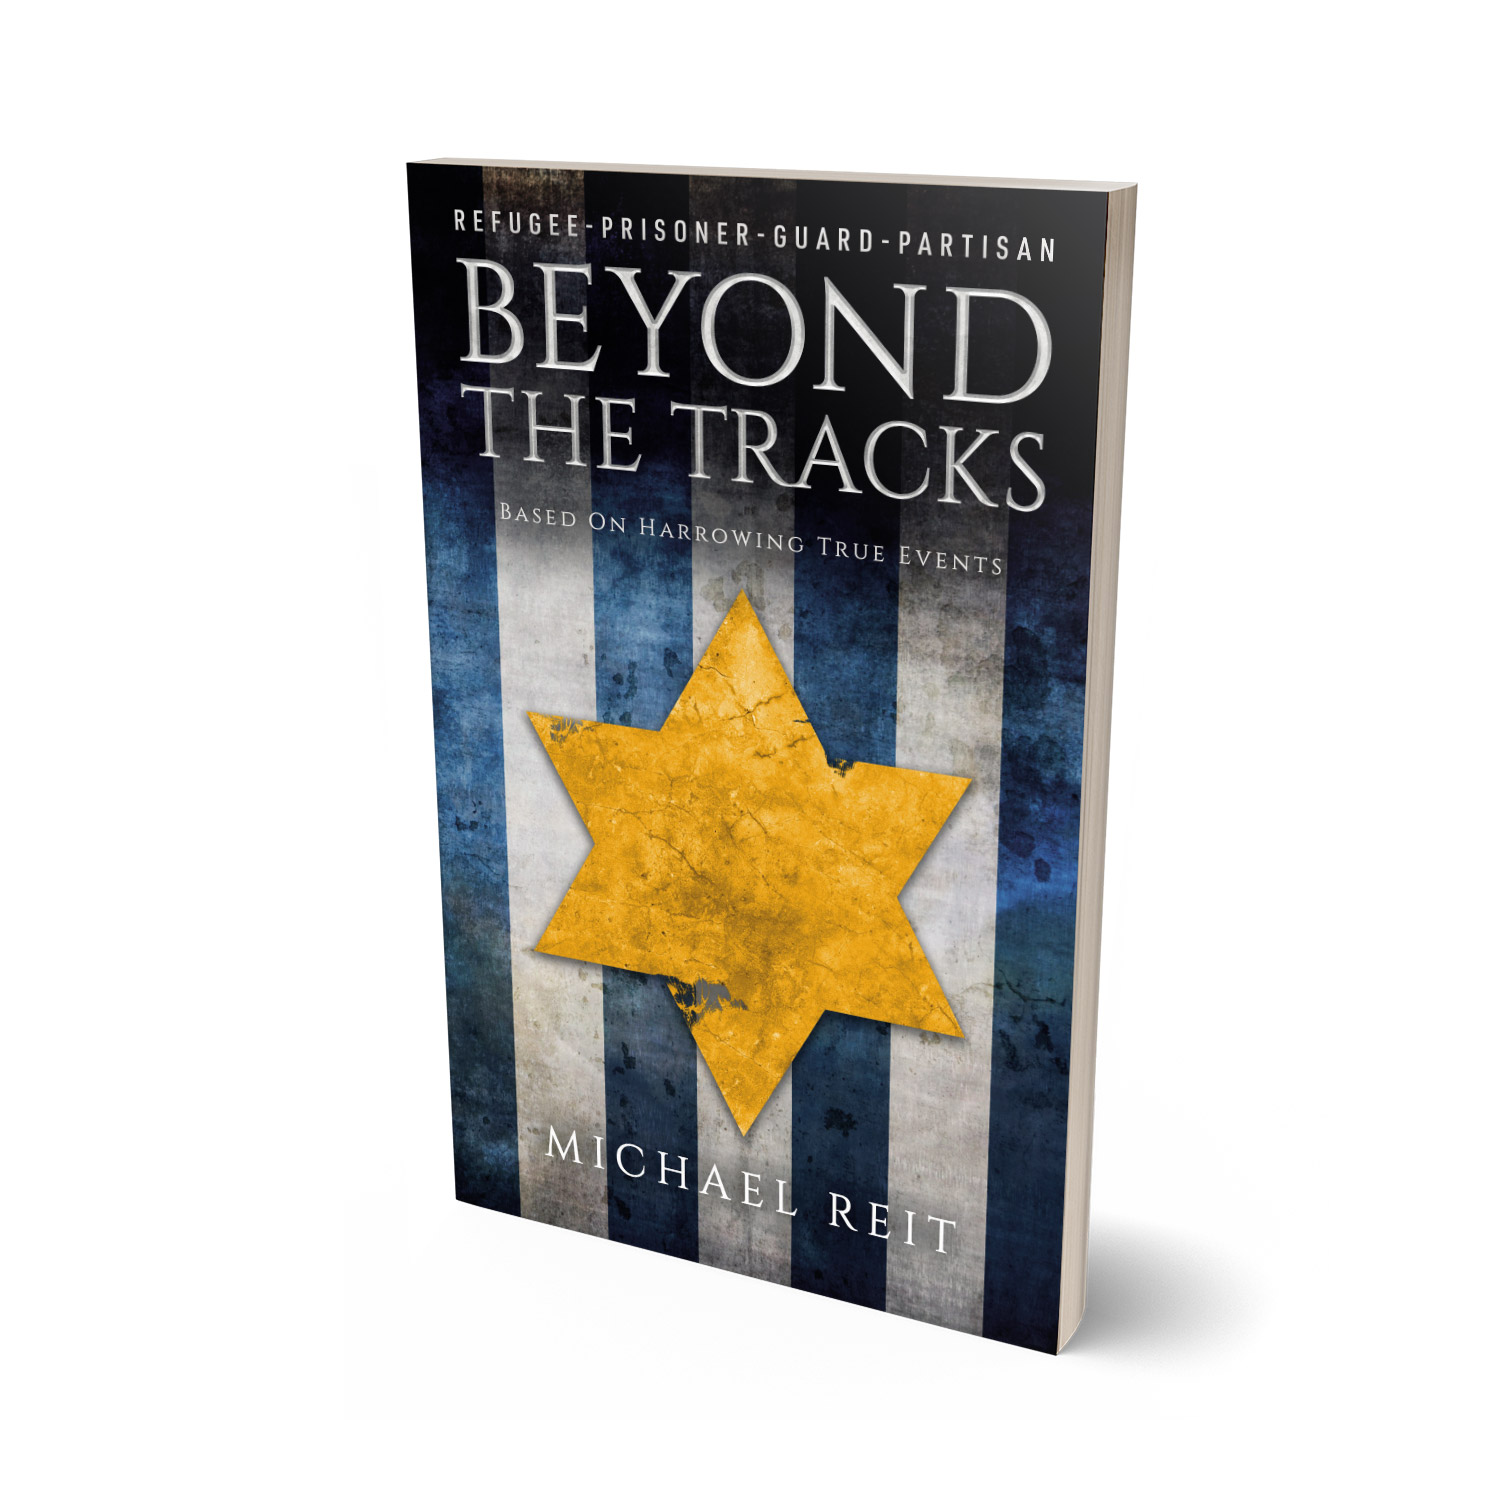 'Beyond The Tracks' is a harrowing tale of survival during WW2. The author is Michael Reit. The book cover design and interior formatting are by Mark Thomas. To learn more about what Mark could do for your book, please visit coverness.com.